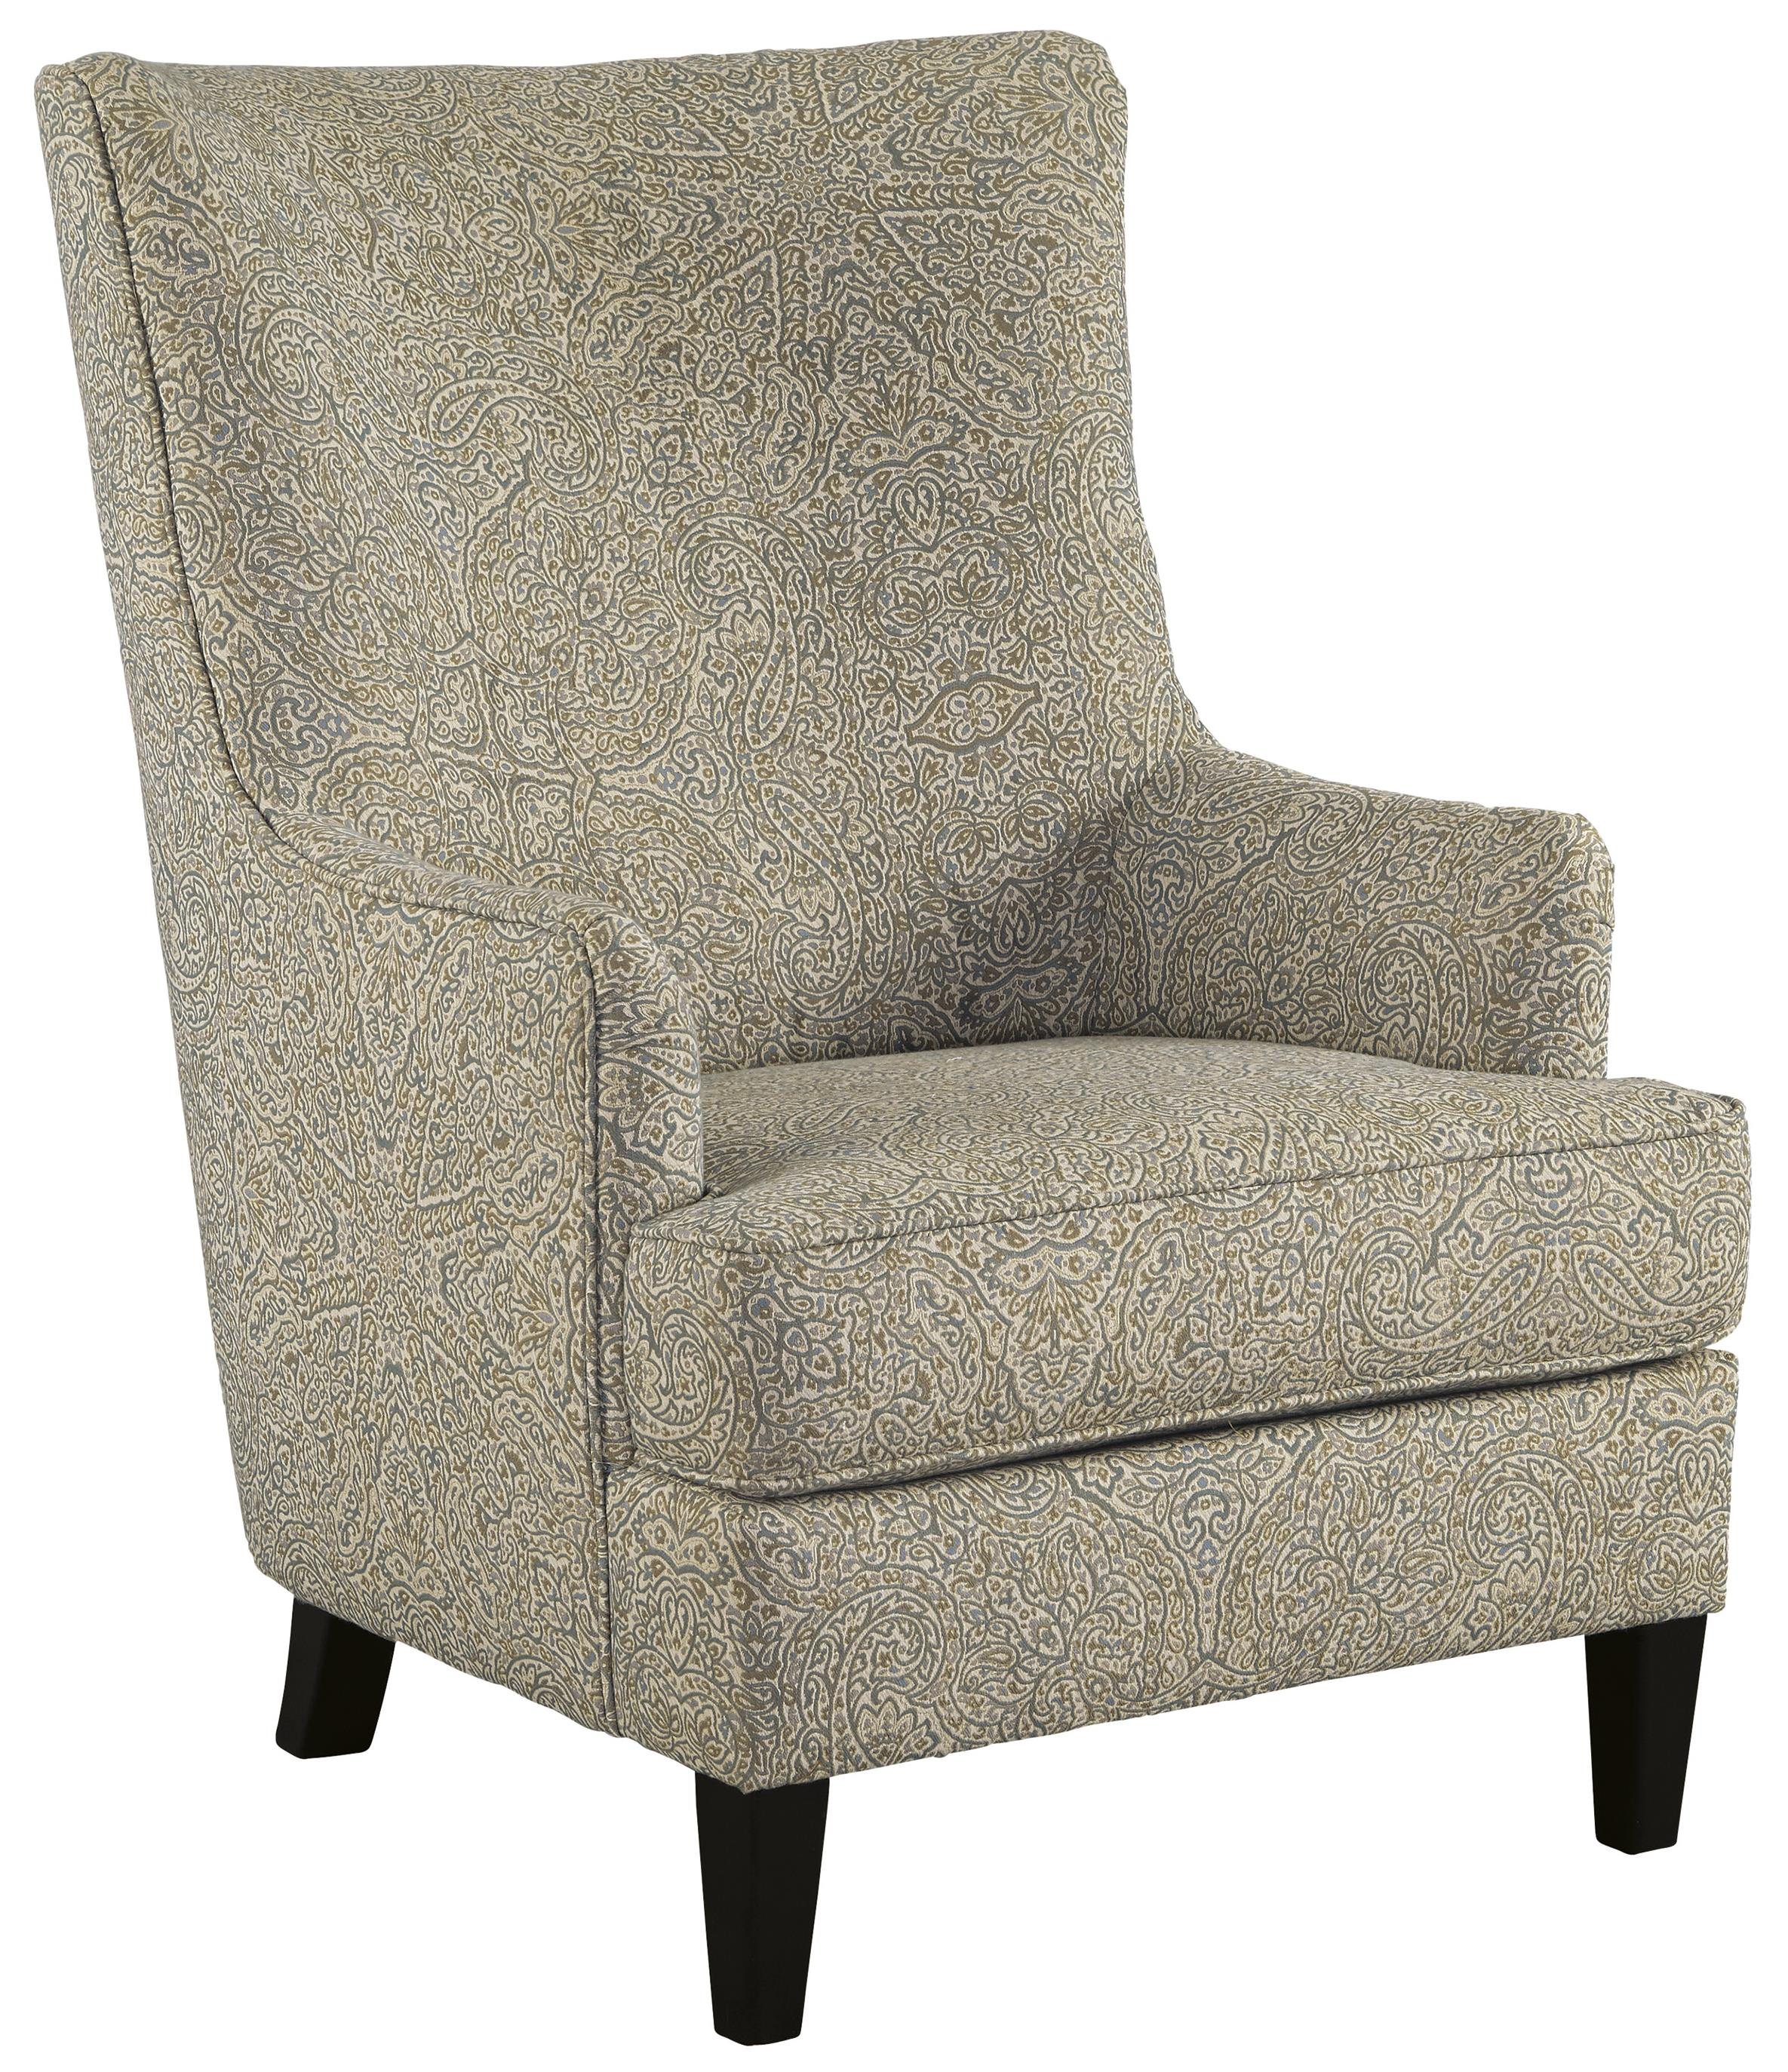 Signature Design by Ashley Kieran Accent Chair - Item Number: 4400021